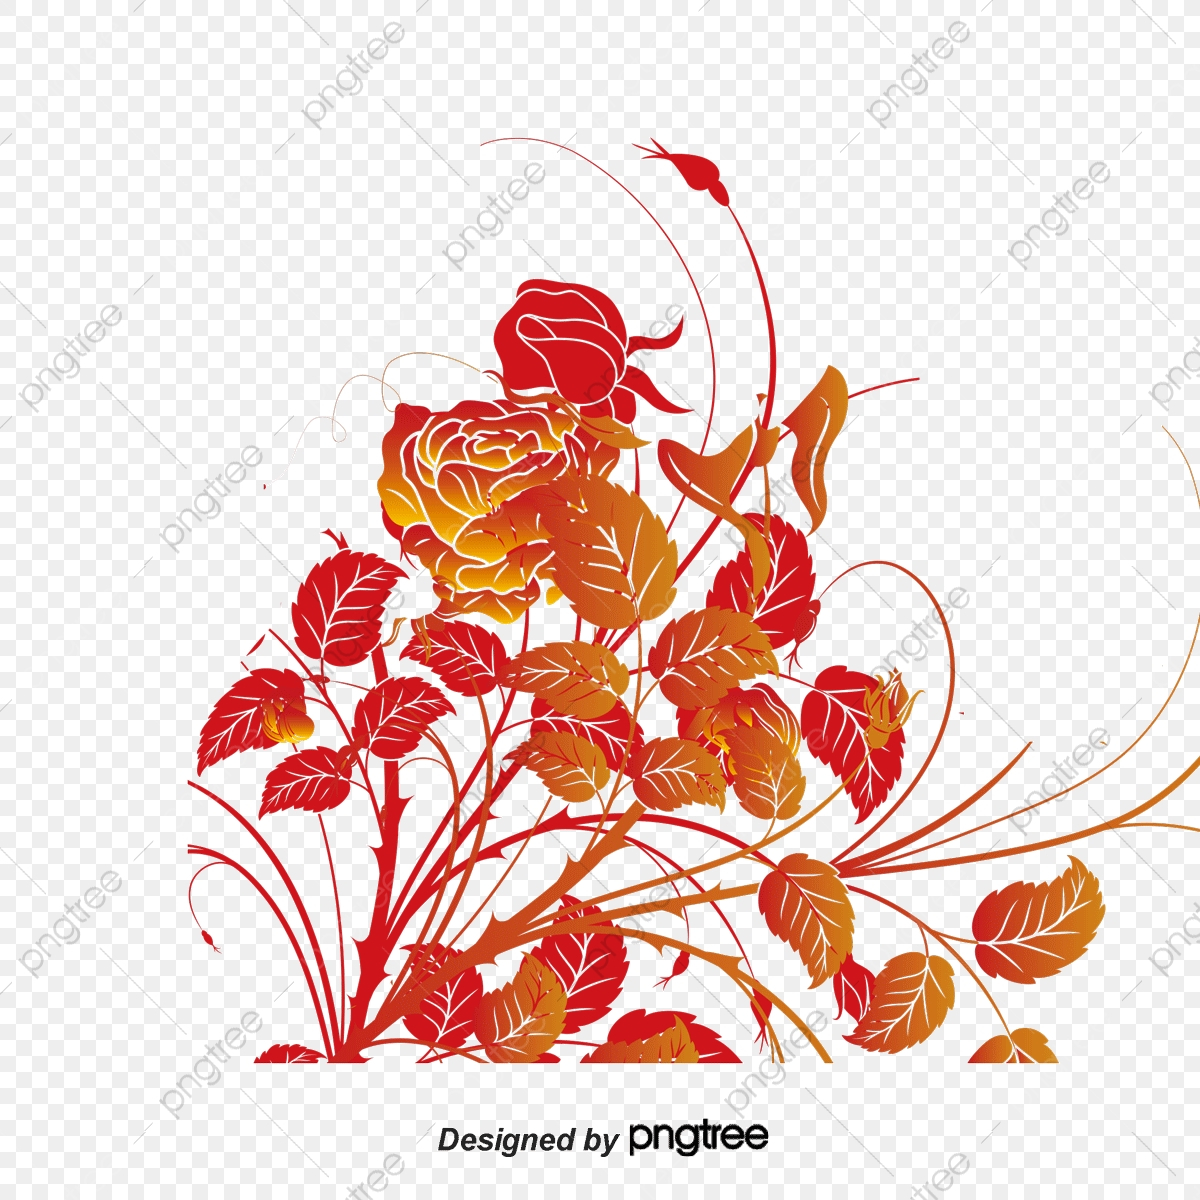 Free Flower Embroidery Patterns Vector Embroidery Patterns Plant Flowers Embroidery Patterns Png